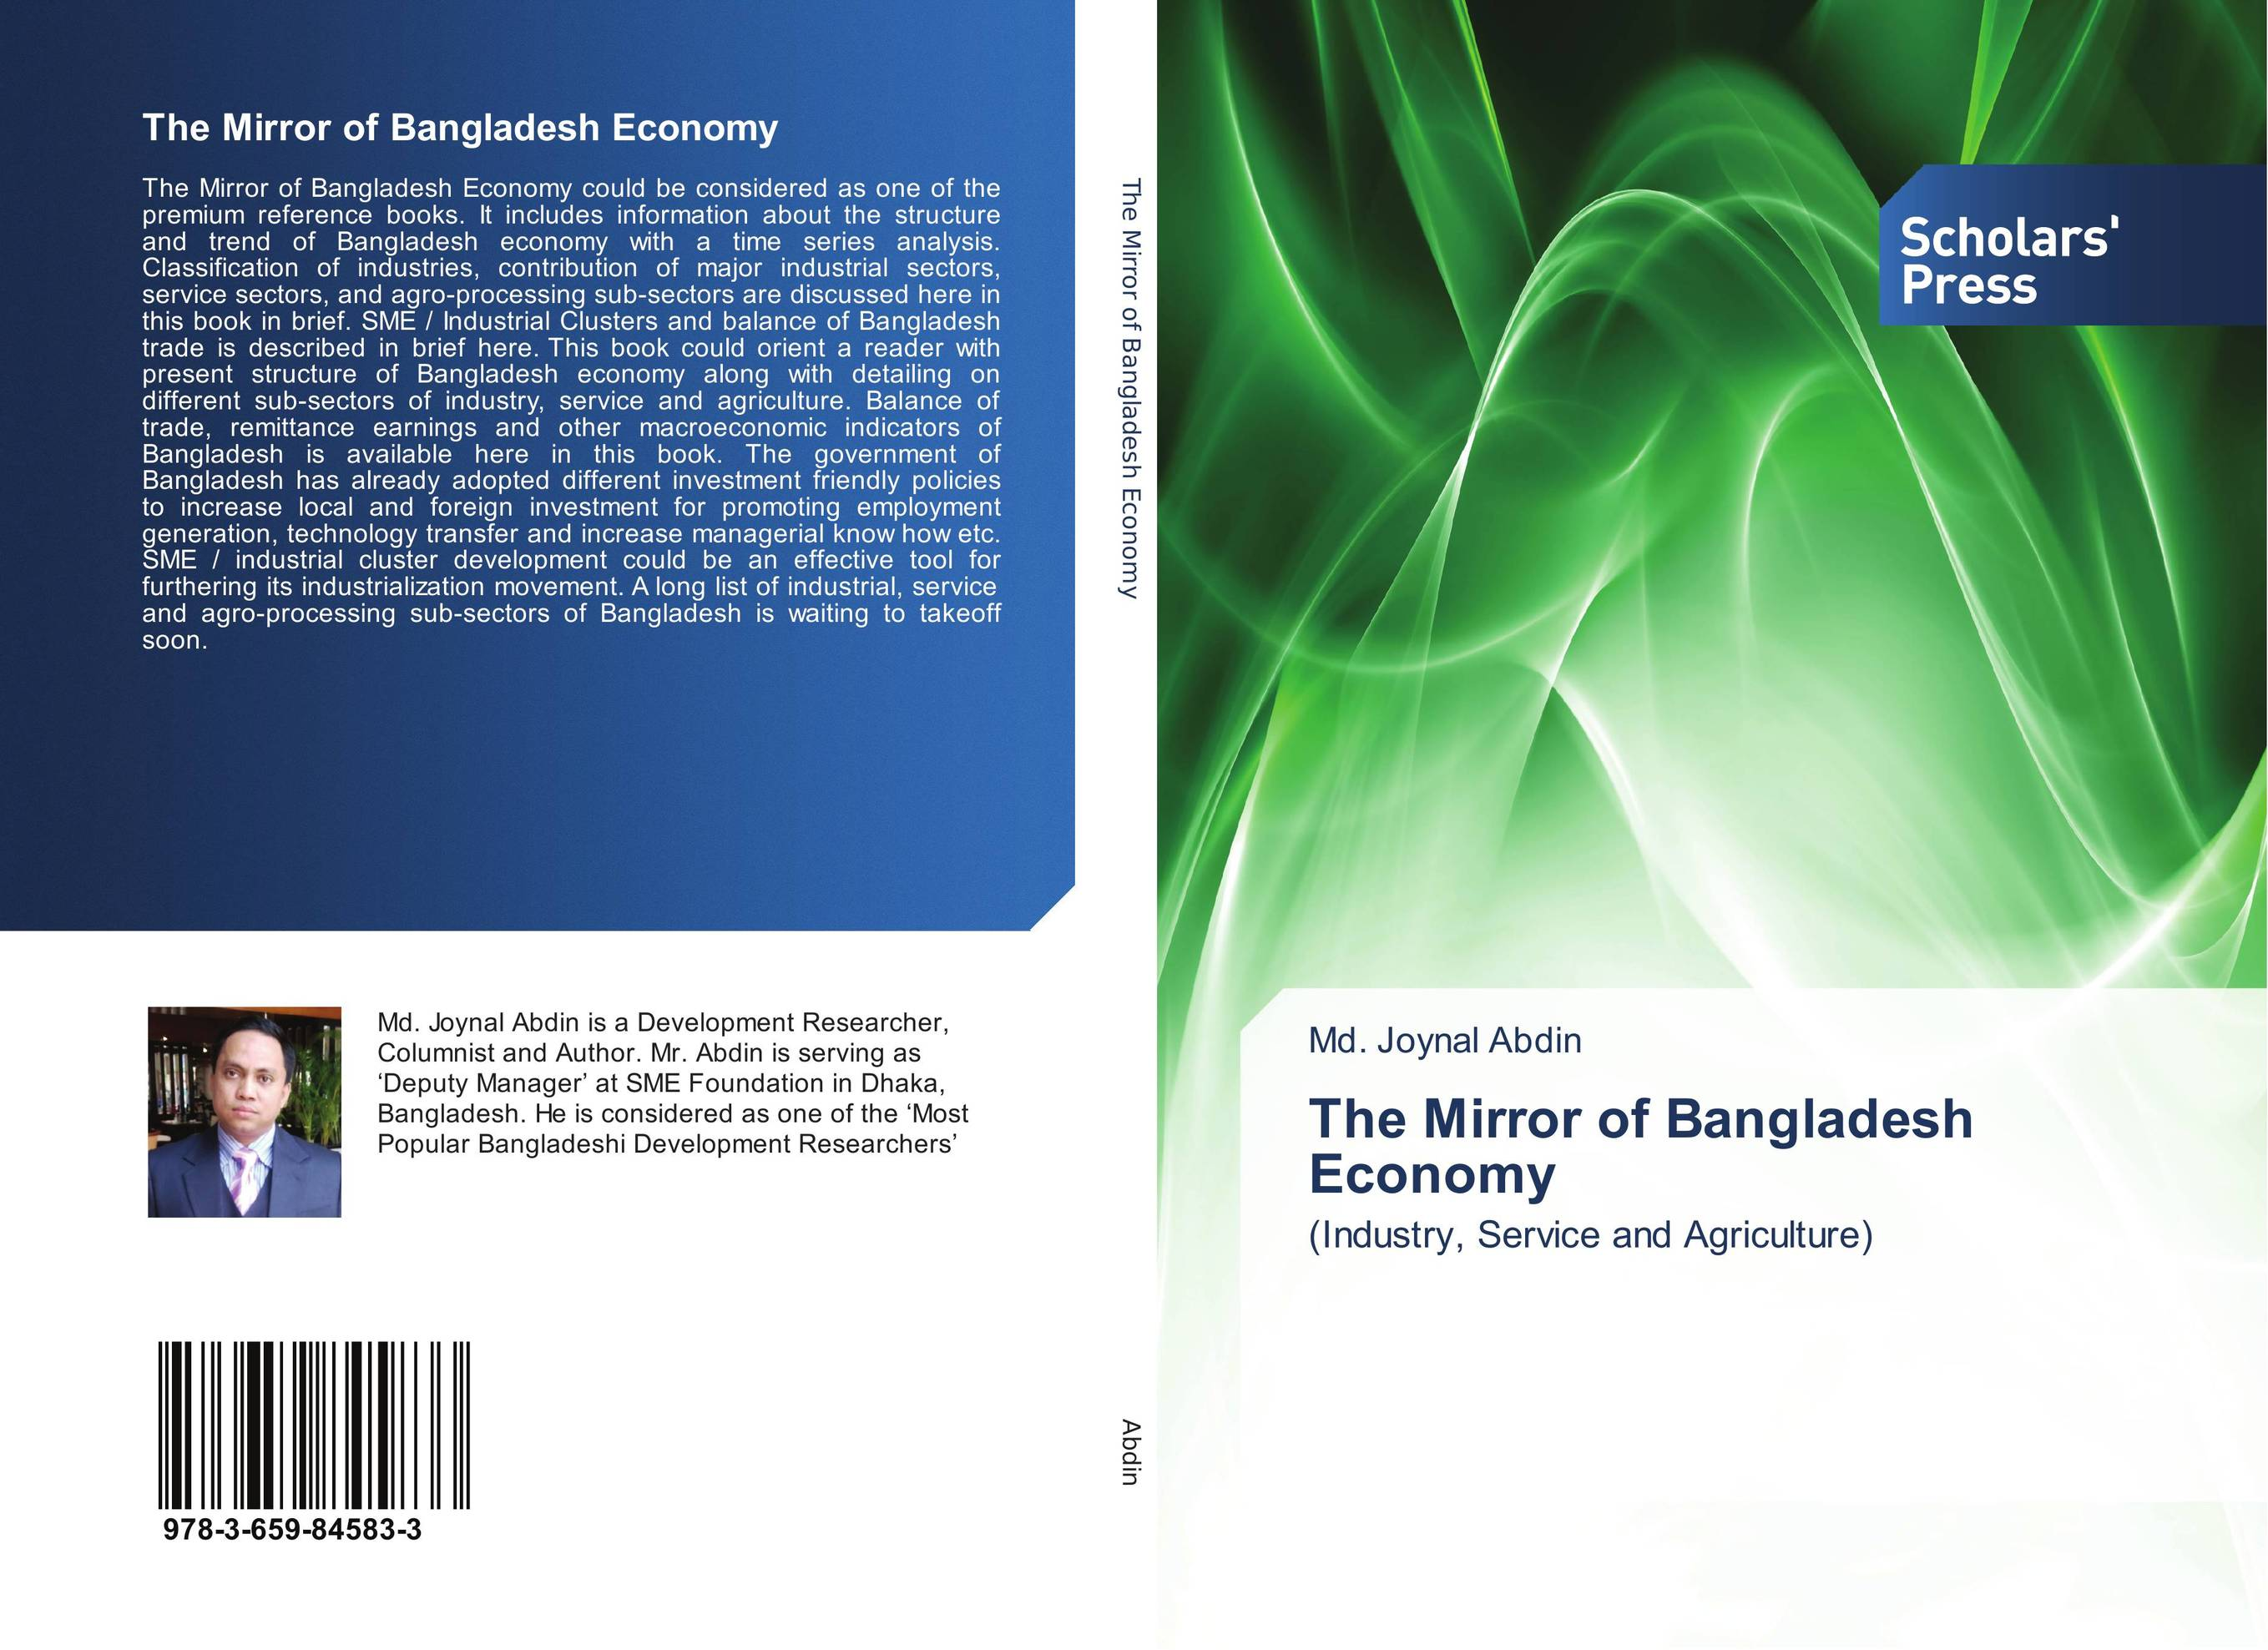 the economic development of bangladesh Bangladesh global economic prospects examines trends for the world economy and how they affect developing countries the report includes country-specific three-year forecasts for major macroeconomic indicators, including commodity and financial markets.